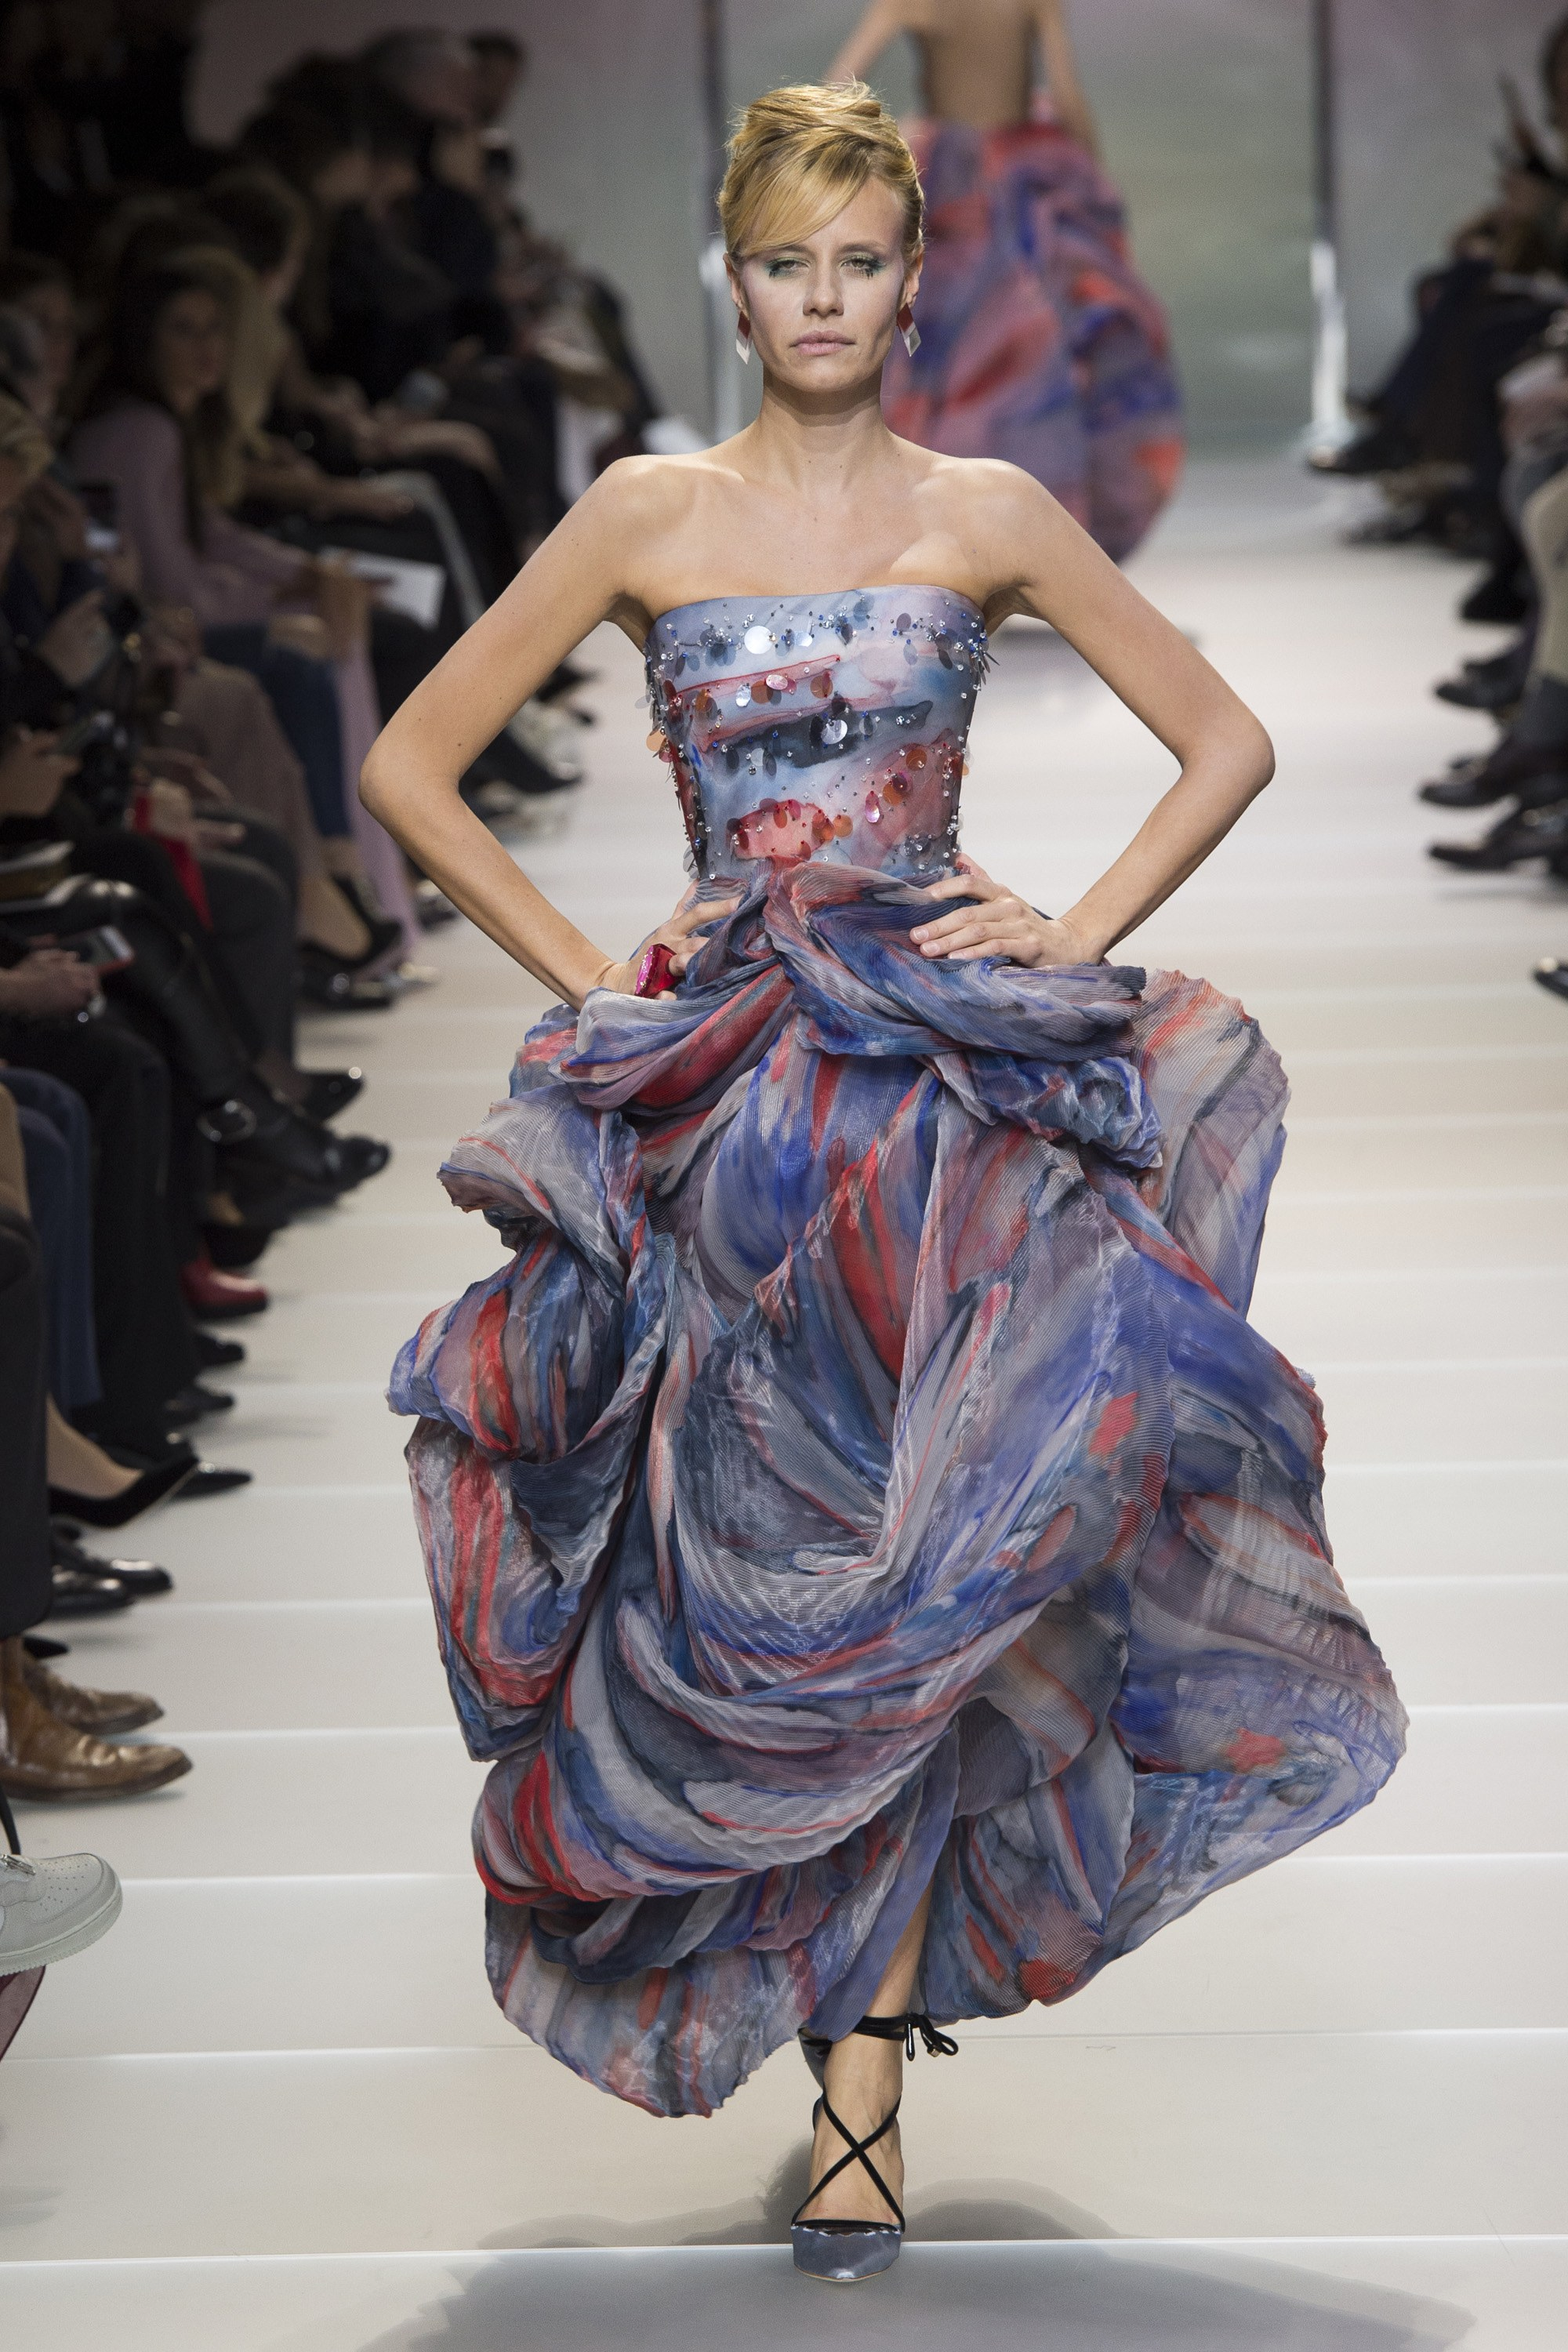 Ugly most dresses of